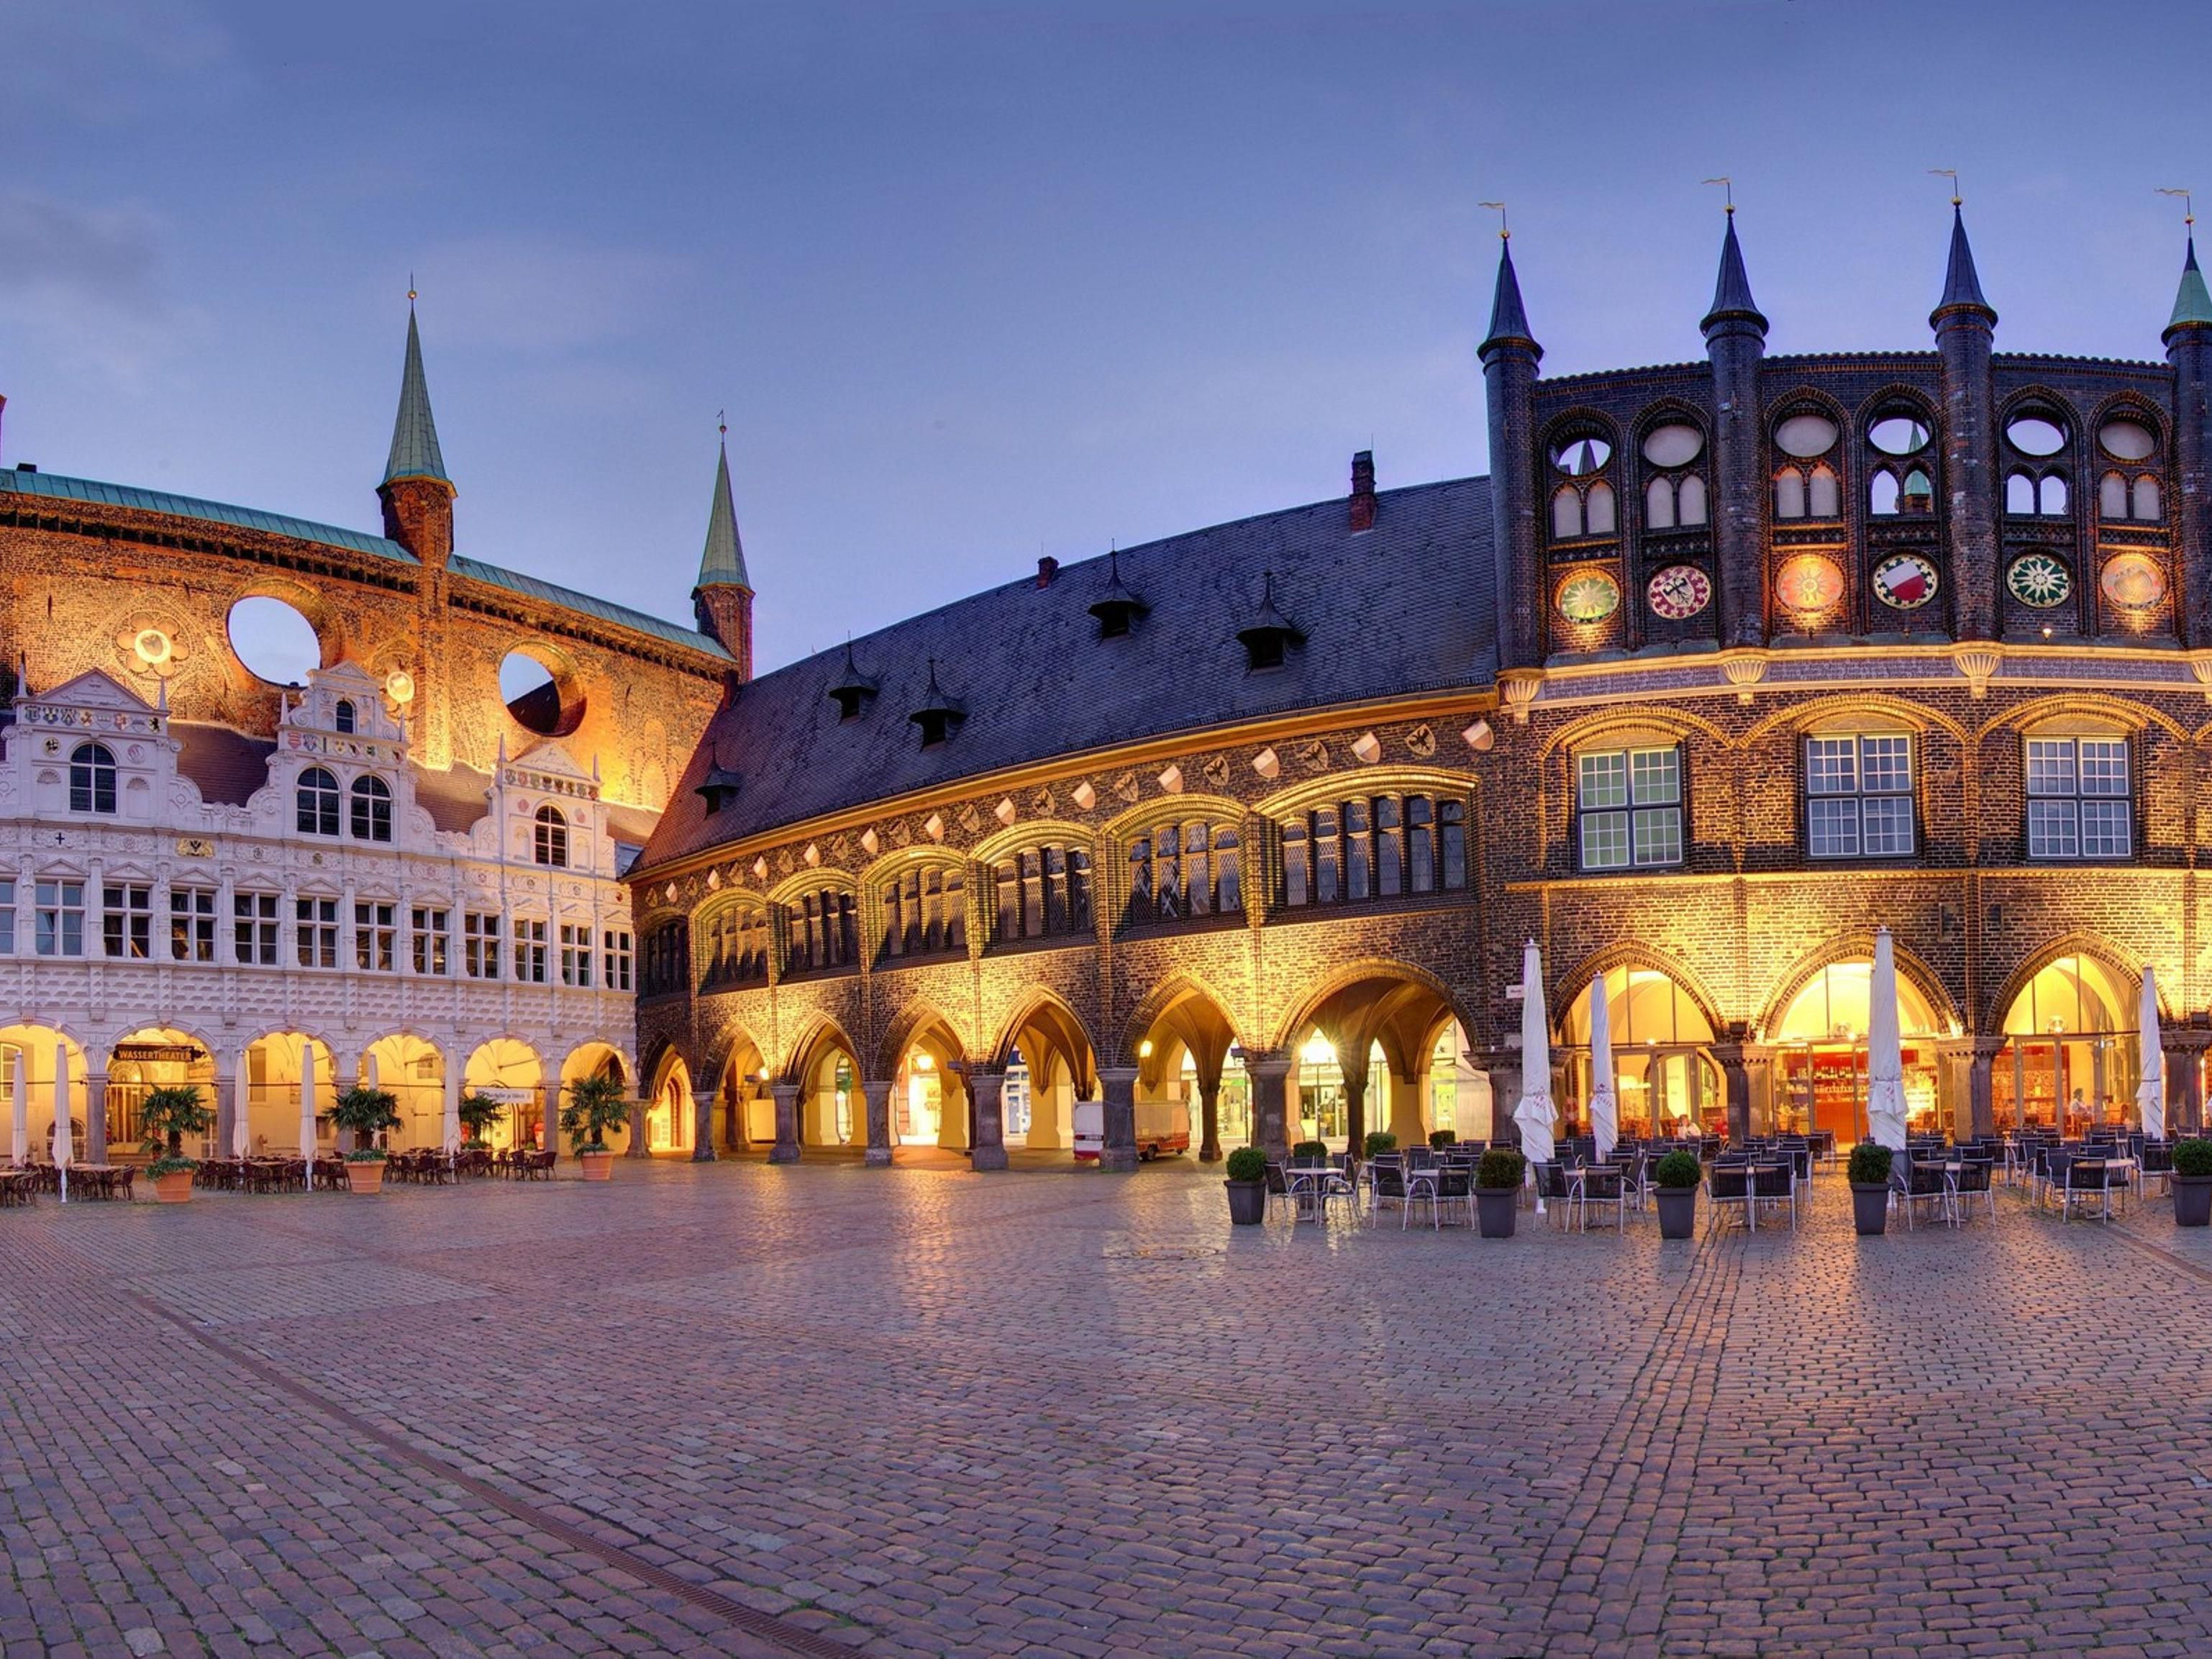 Lubeck´s town hall market